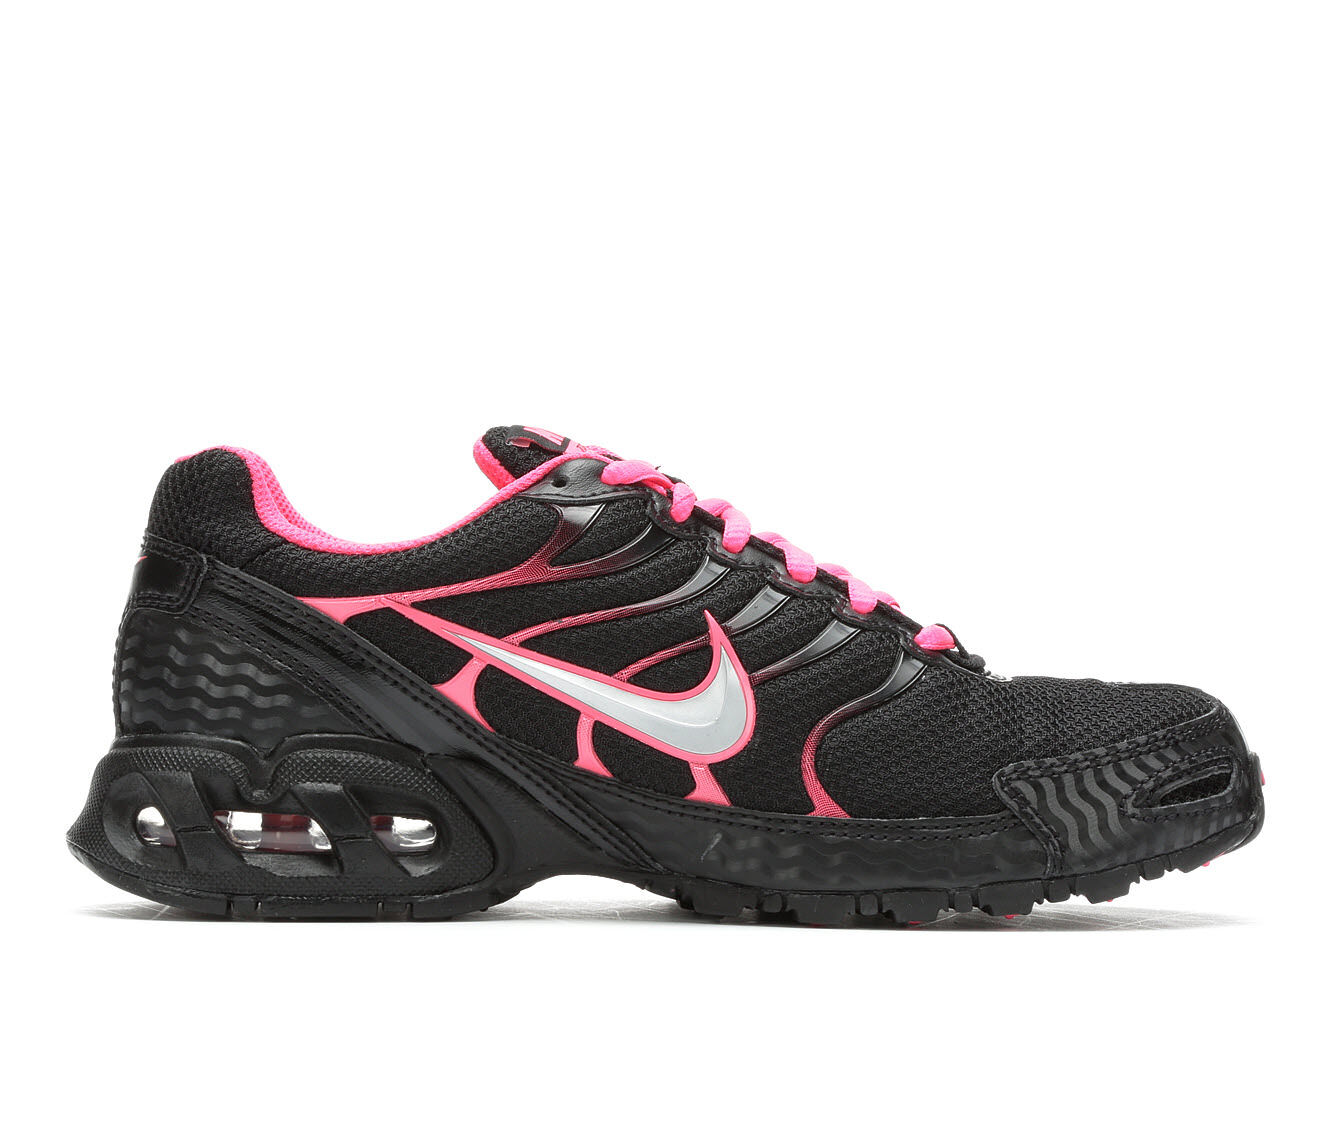 100% Quality Women's Nike Air Max Torch 4 Running Shoes Black/Pink/Silv